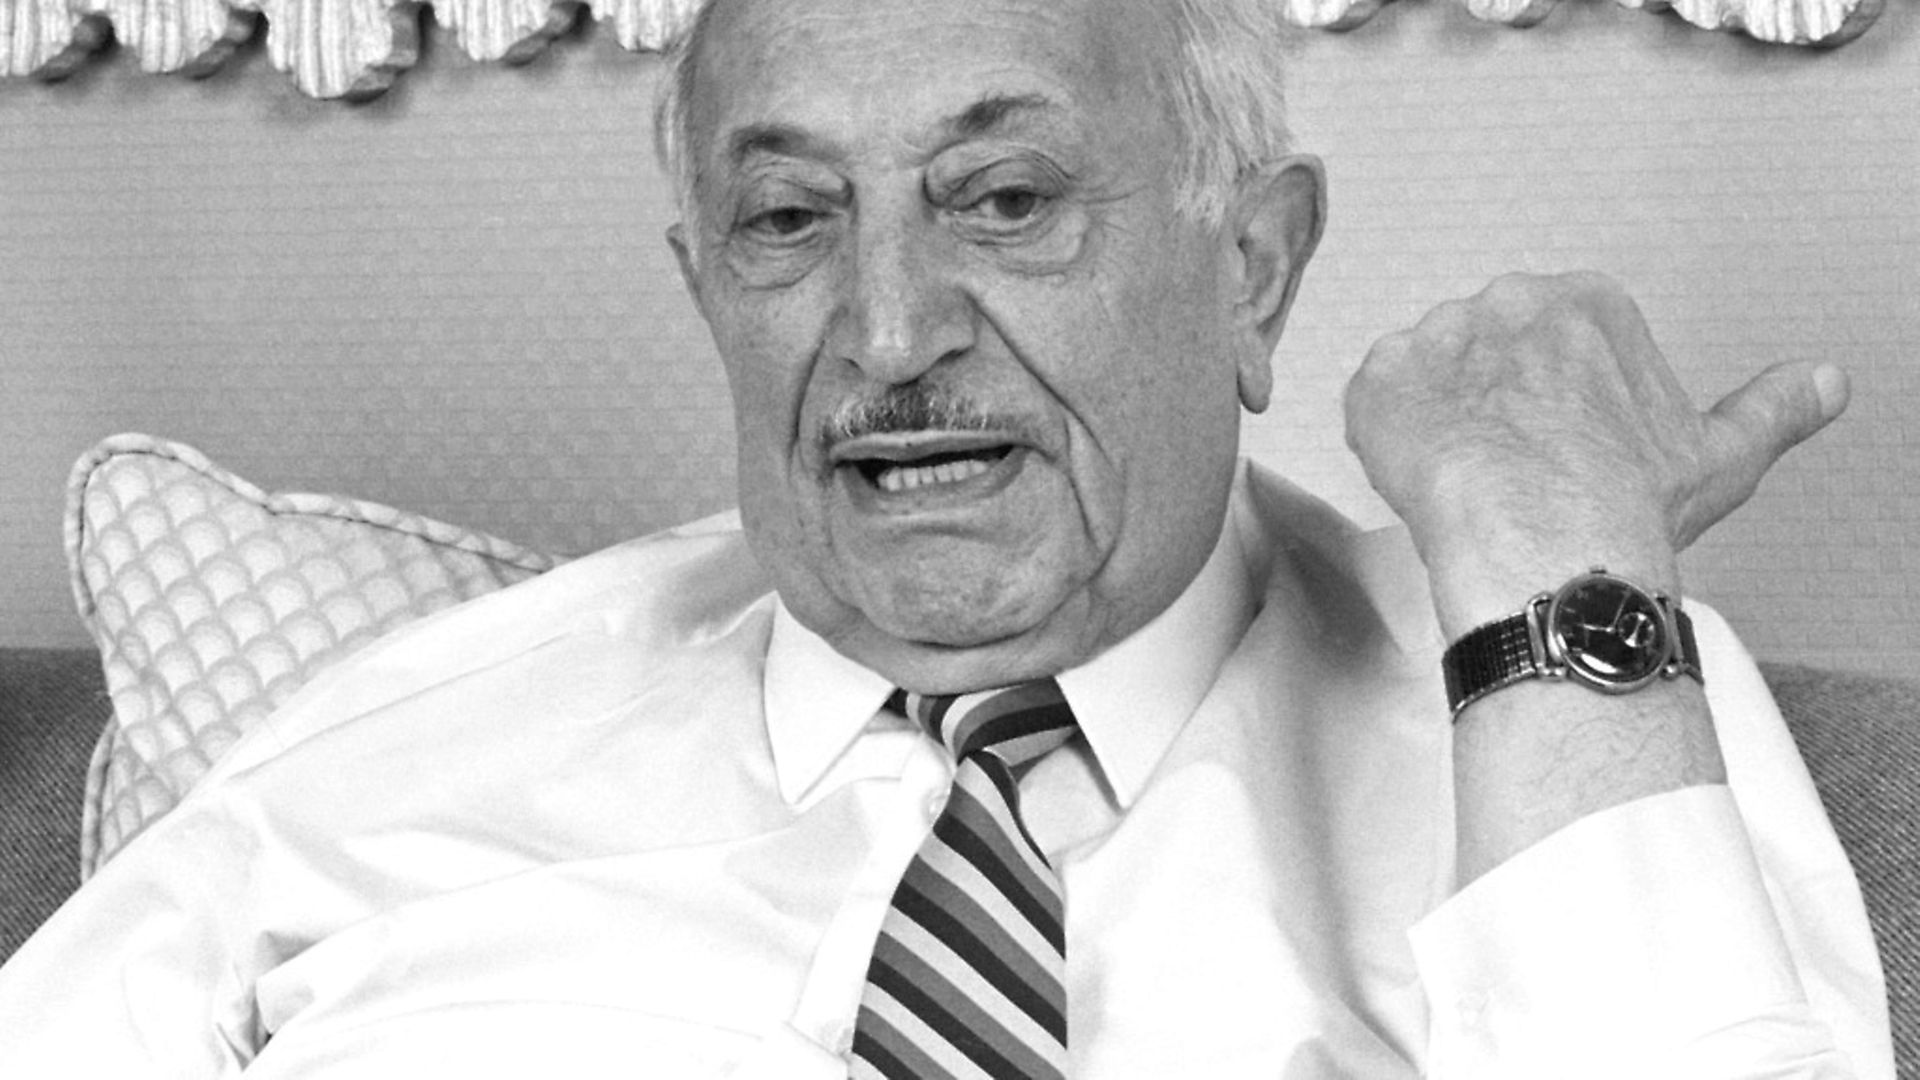 Portrait of Austrian author and Nazi hunter Simon Wiesenthal (1908 - 2005) during a photo shoot, Los Angeles, California, January 28, 1987. (Photo by Bob Riha, Jr./Getty Images) - Credit: Getty Images